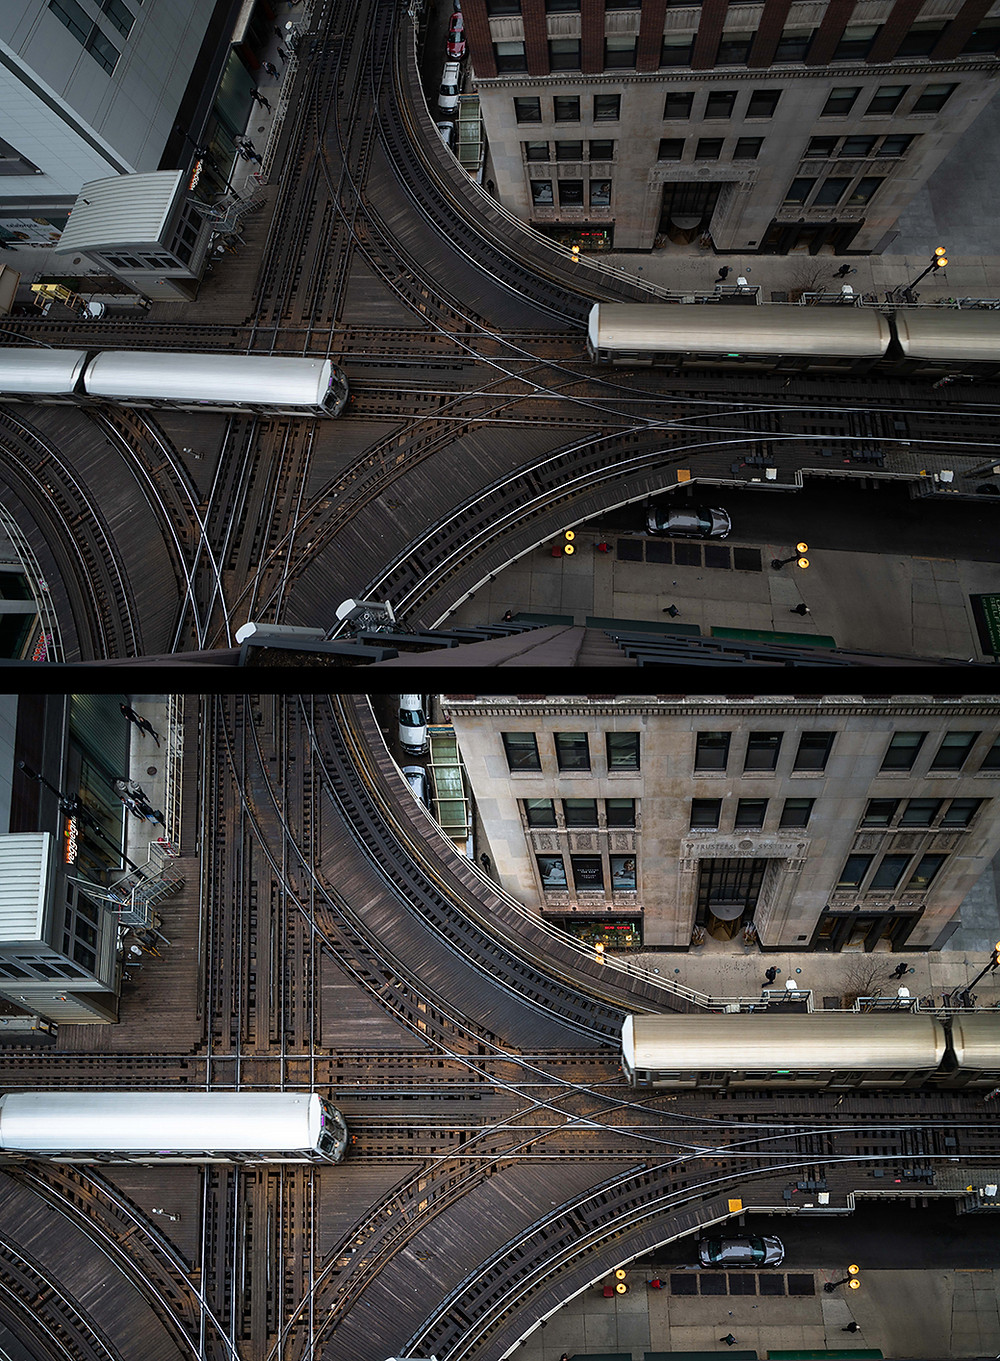 how to edit photos perspective before and after chicago el aerial